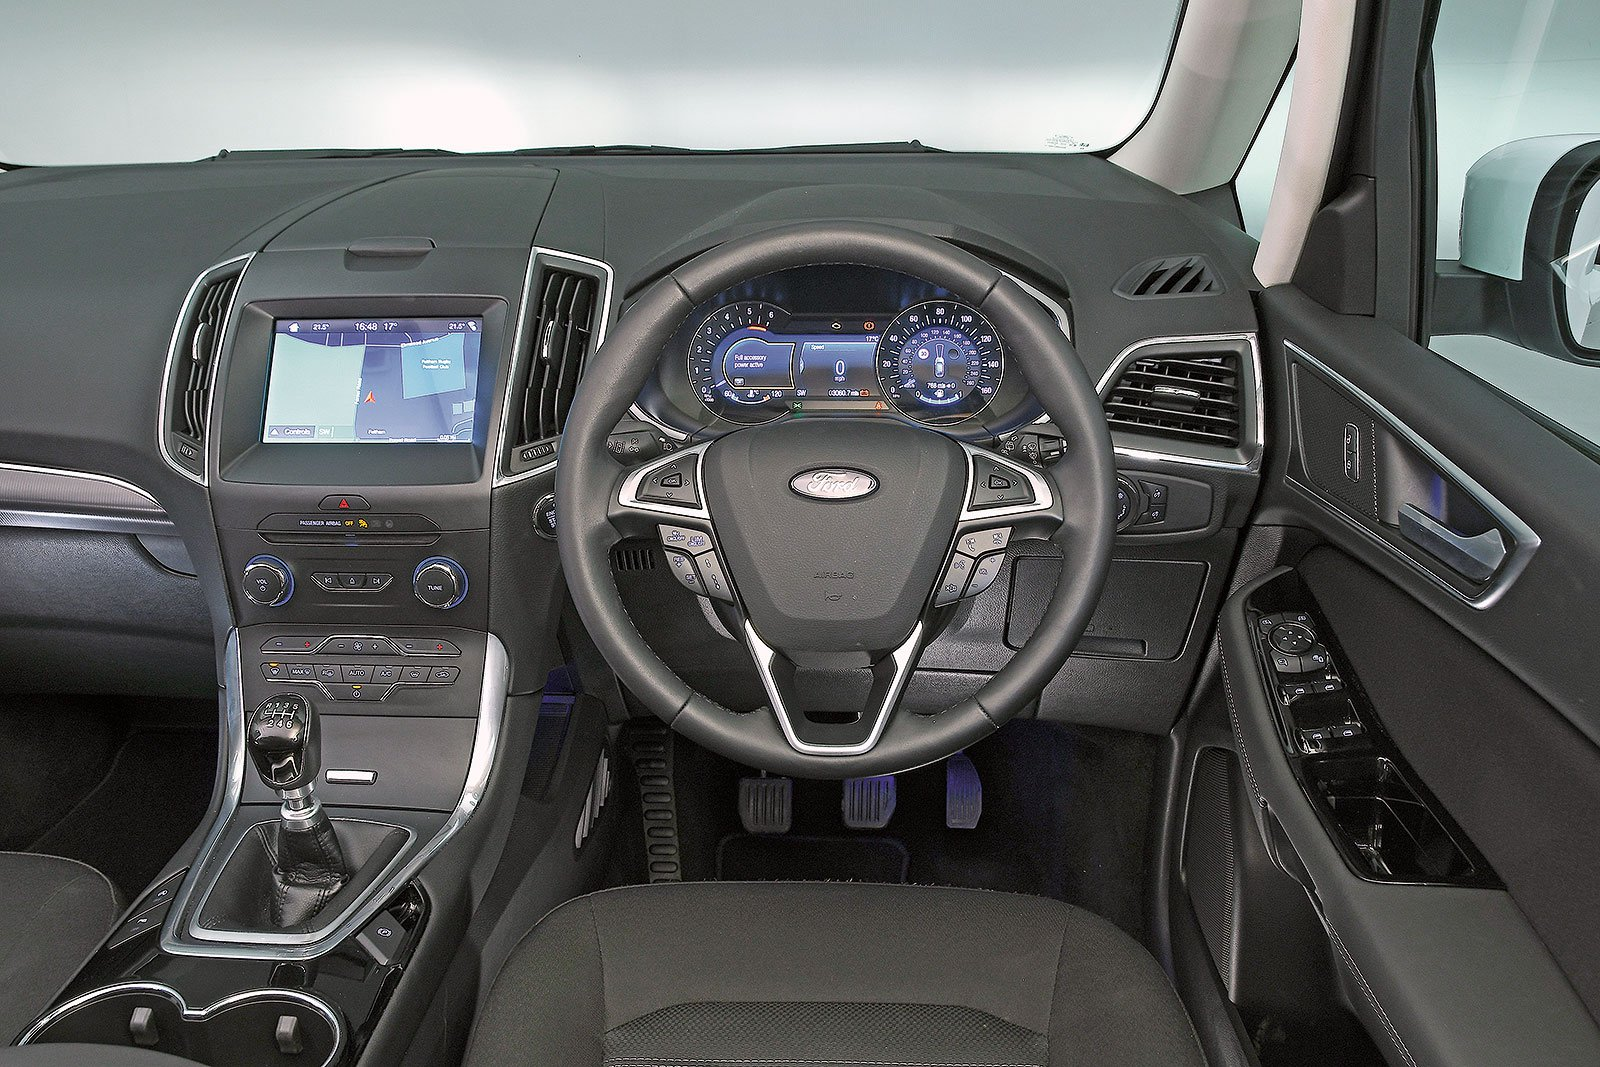 Ford Galaxy (2015-present) - interior